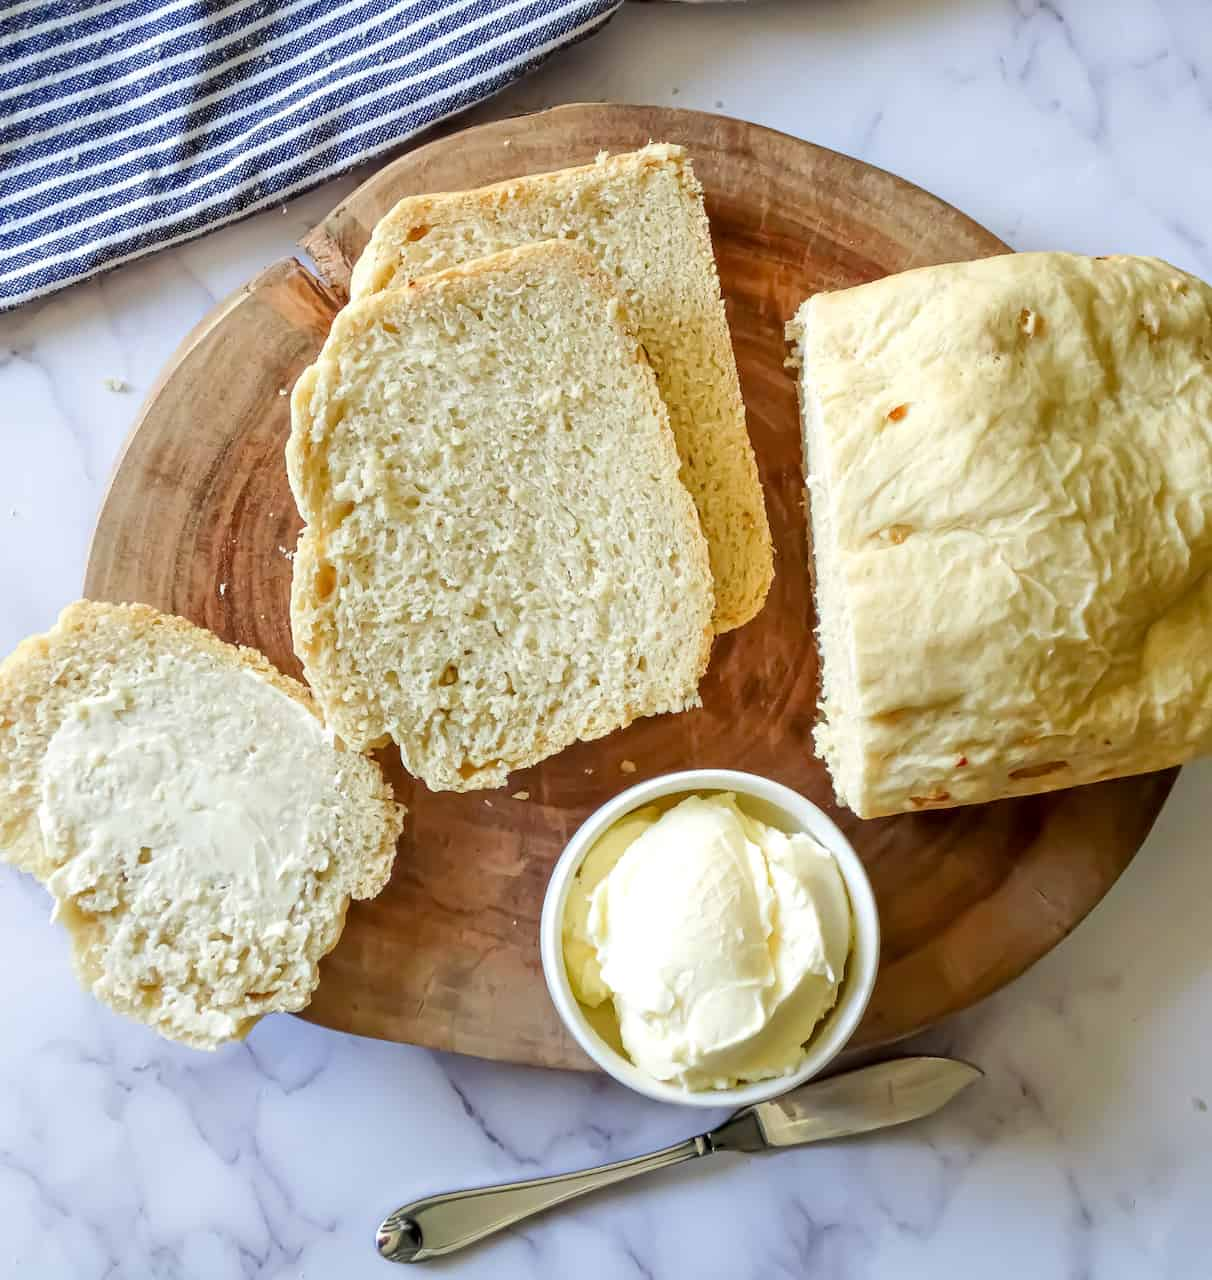 homemade bread machine garlic bread cut into slices and served with butter on a wooden background